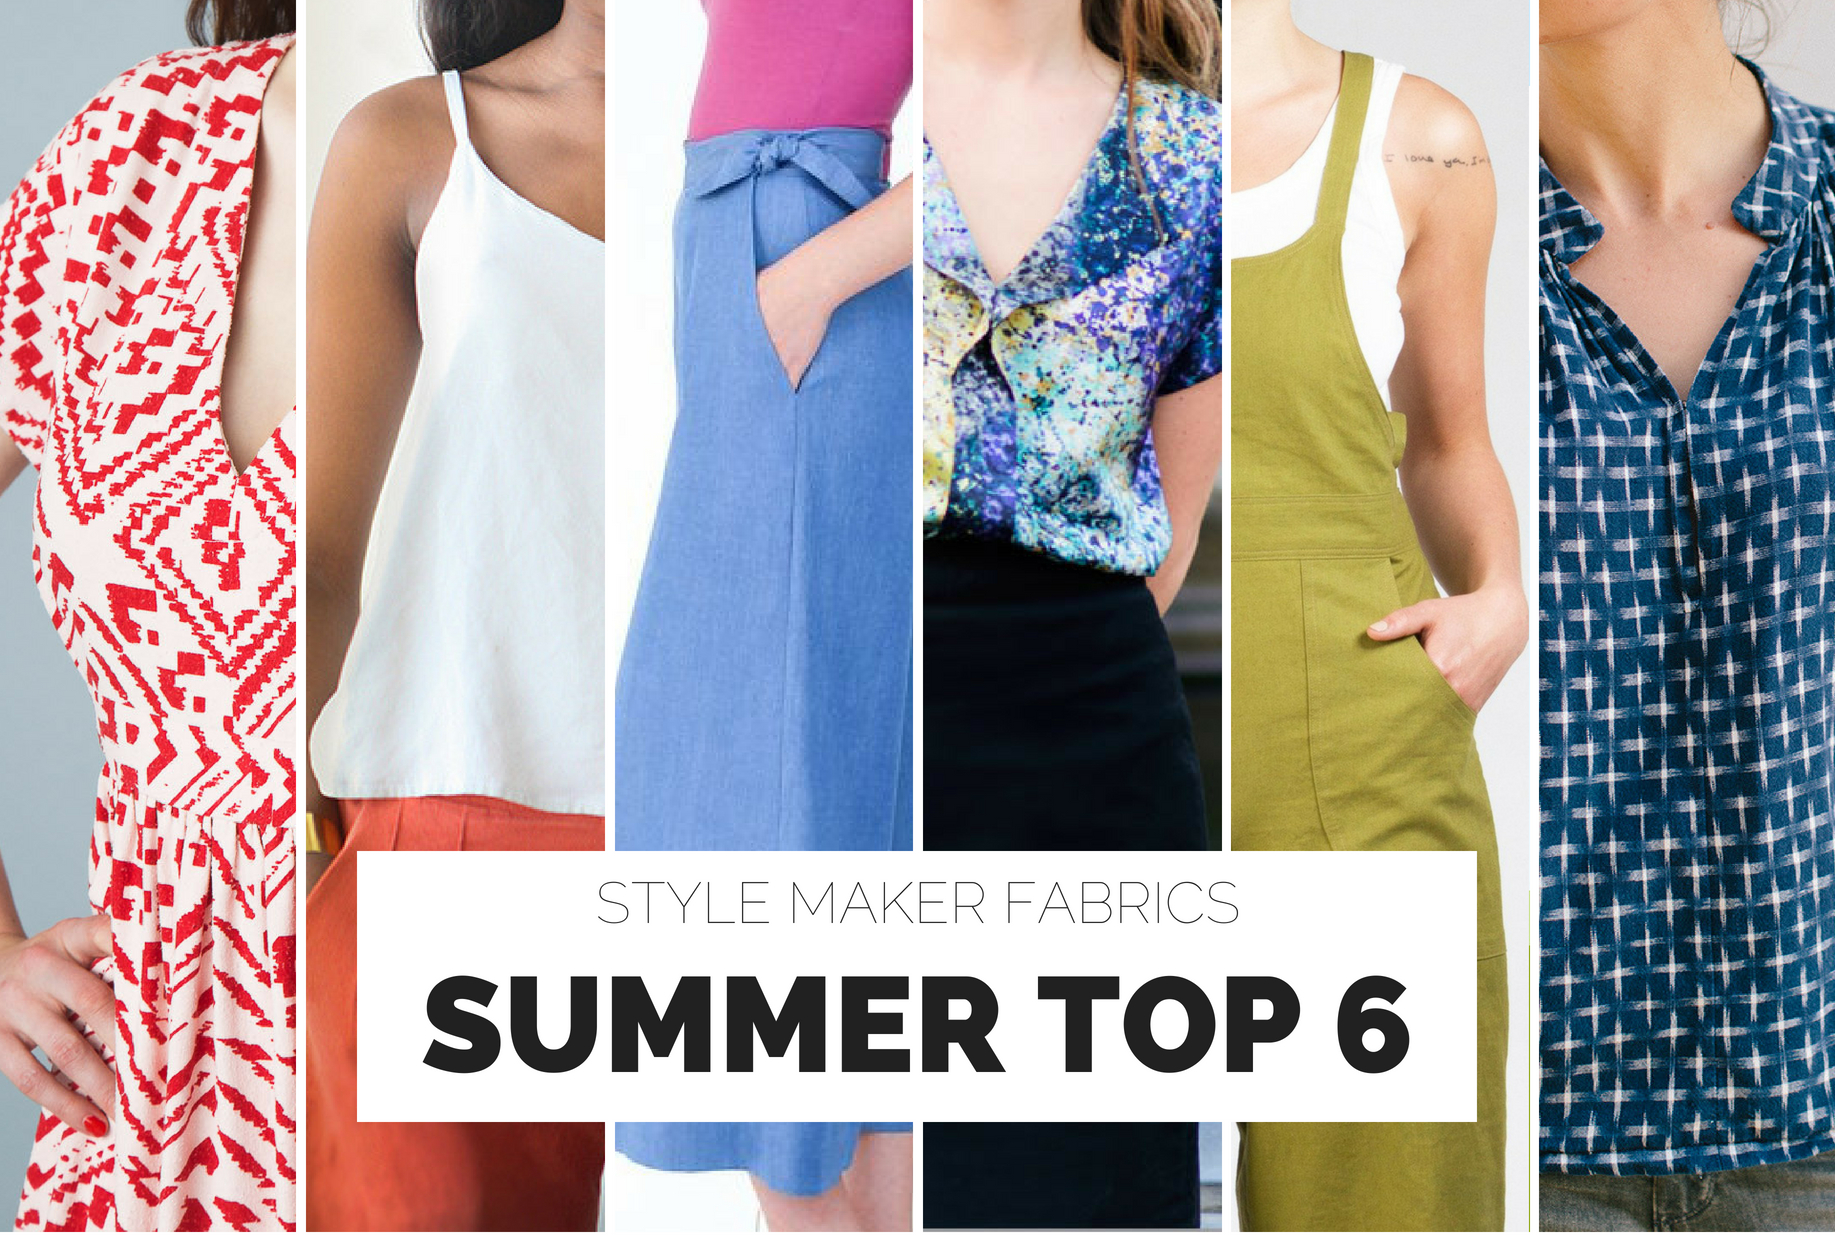 Top 6 Sewing Patterns for Summer 2018 | Style Maker Fabrics